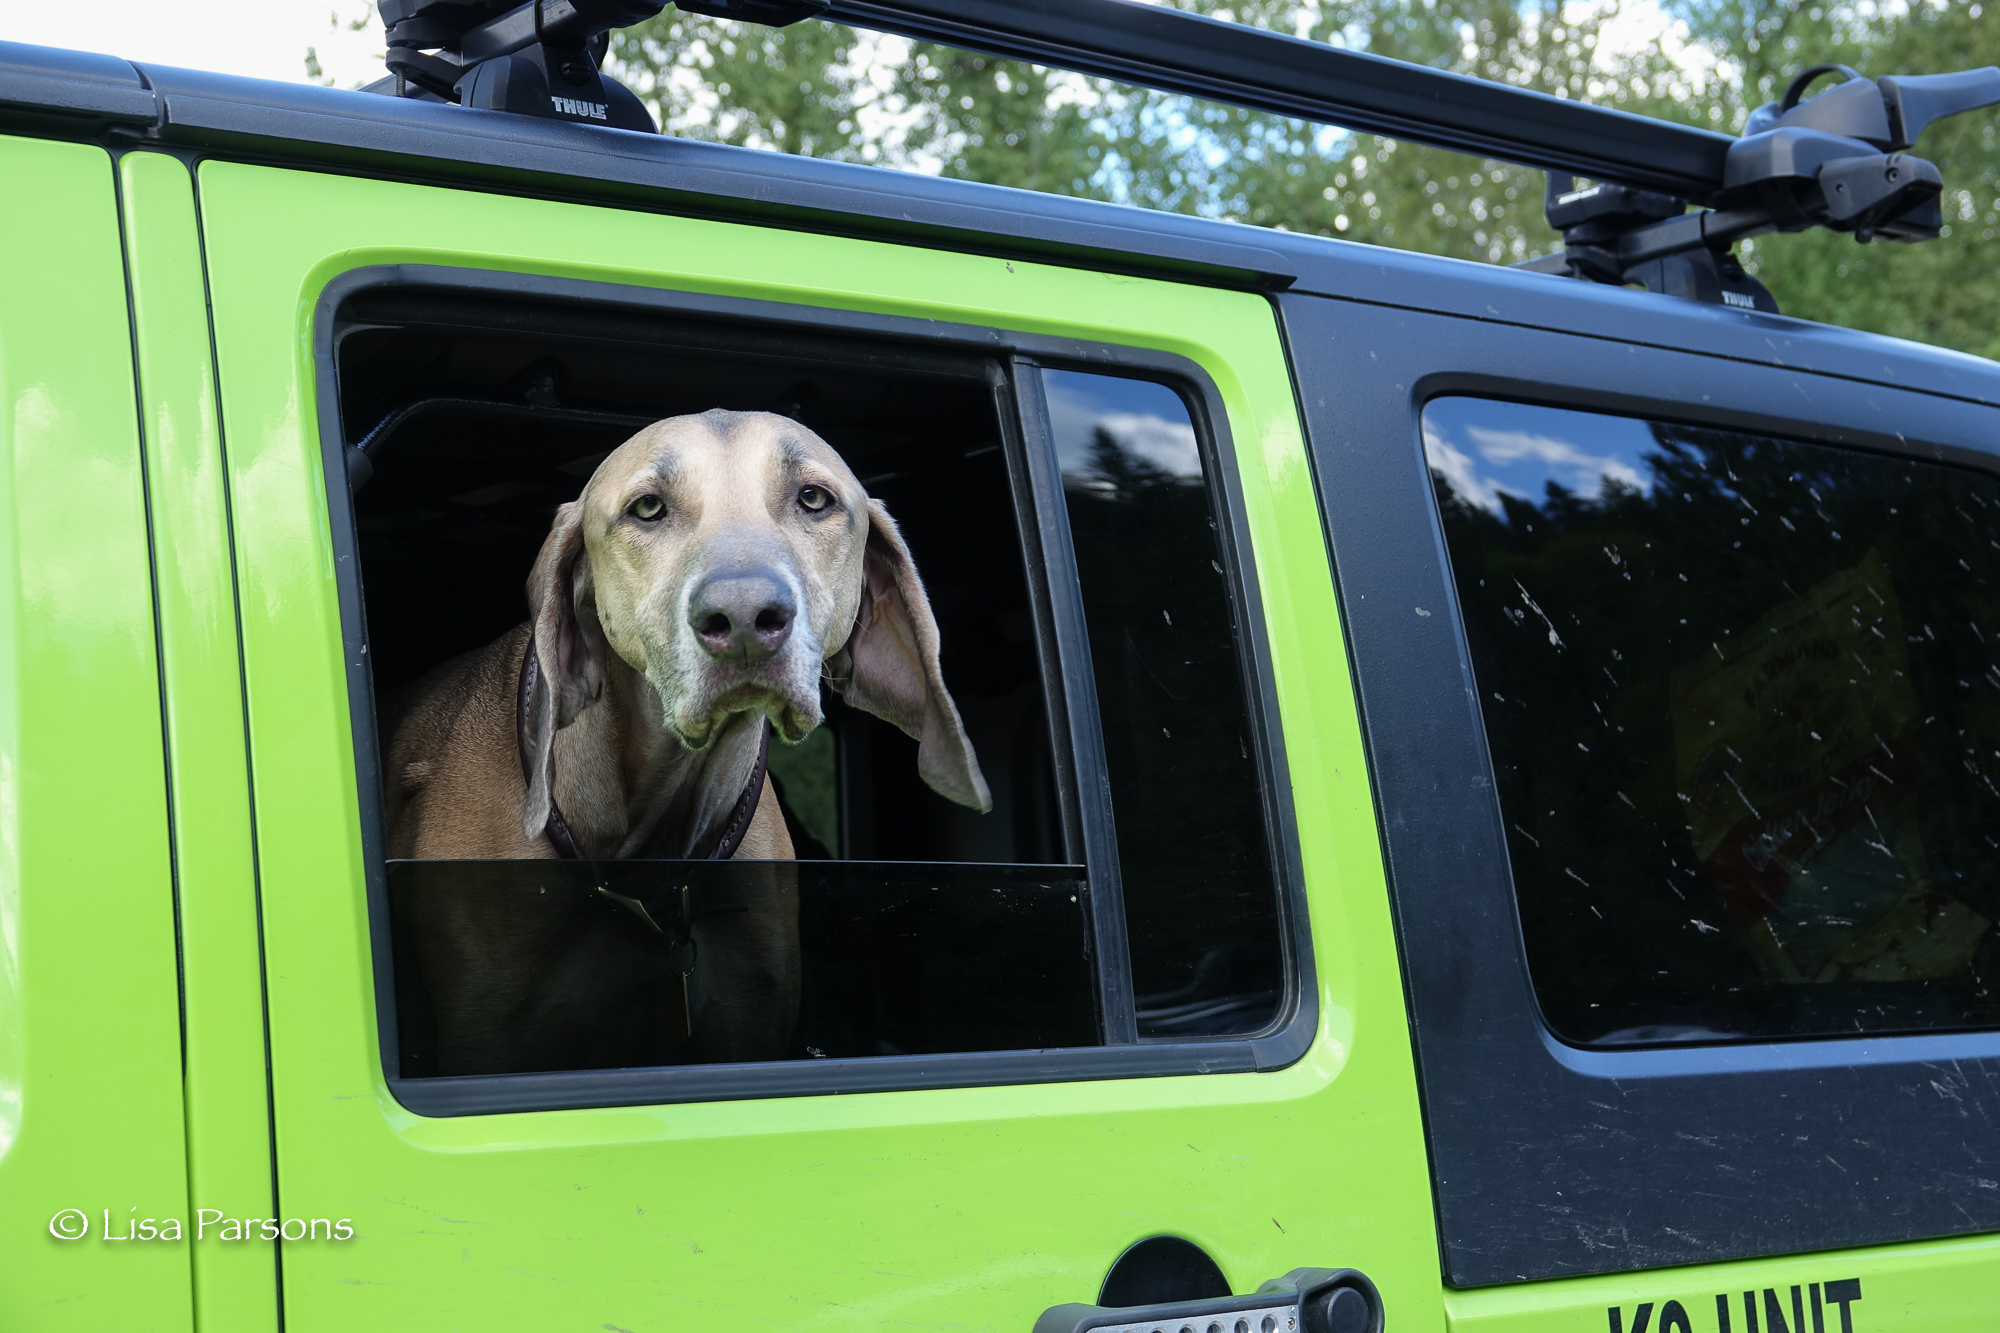 Even dogs love the Green River Gorge